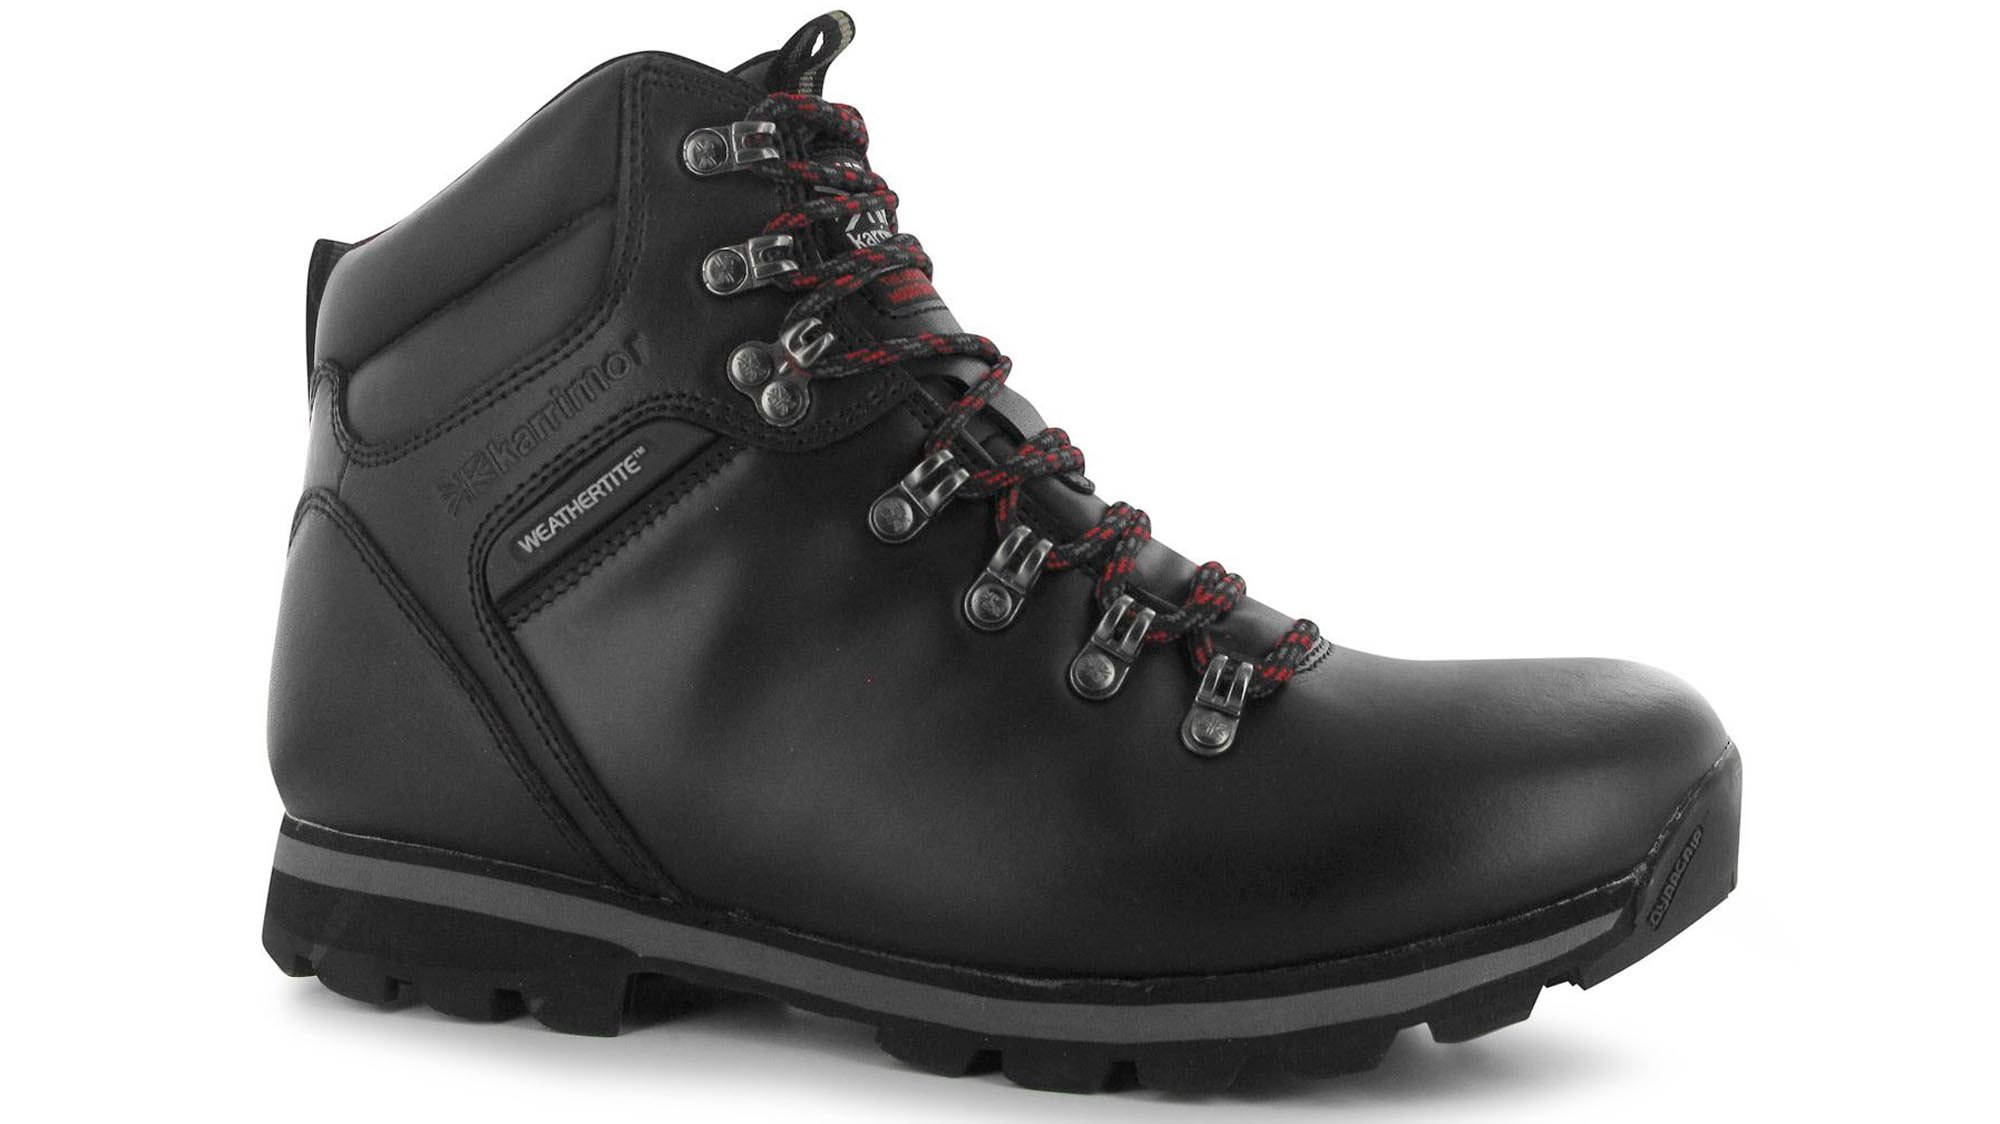 3daf273438601e Simply the best boot on the market for under £50. Karrimor's Munro is a gem  of a boot best suited to autumn and winter hikes and adventures.